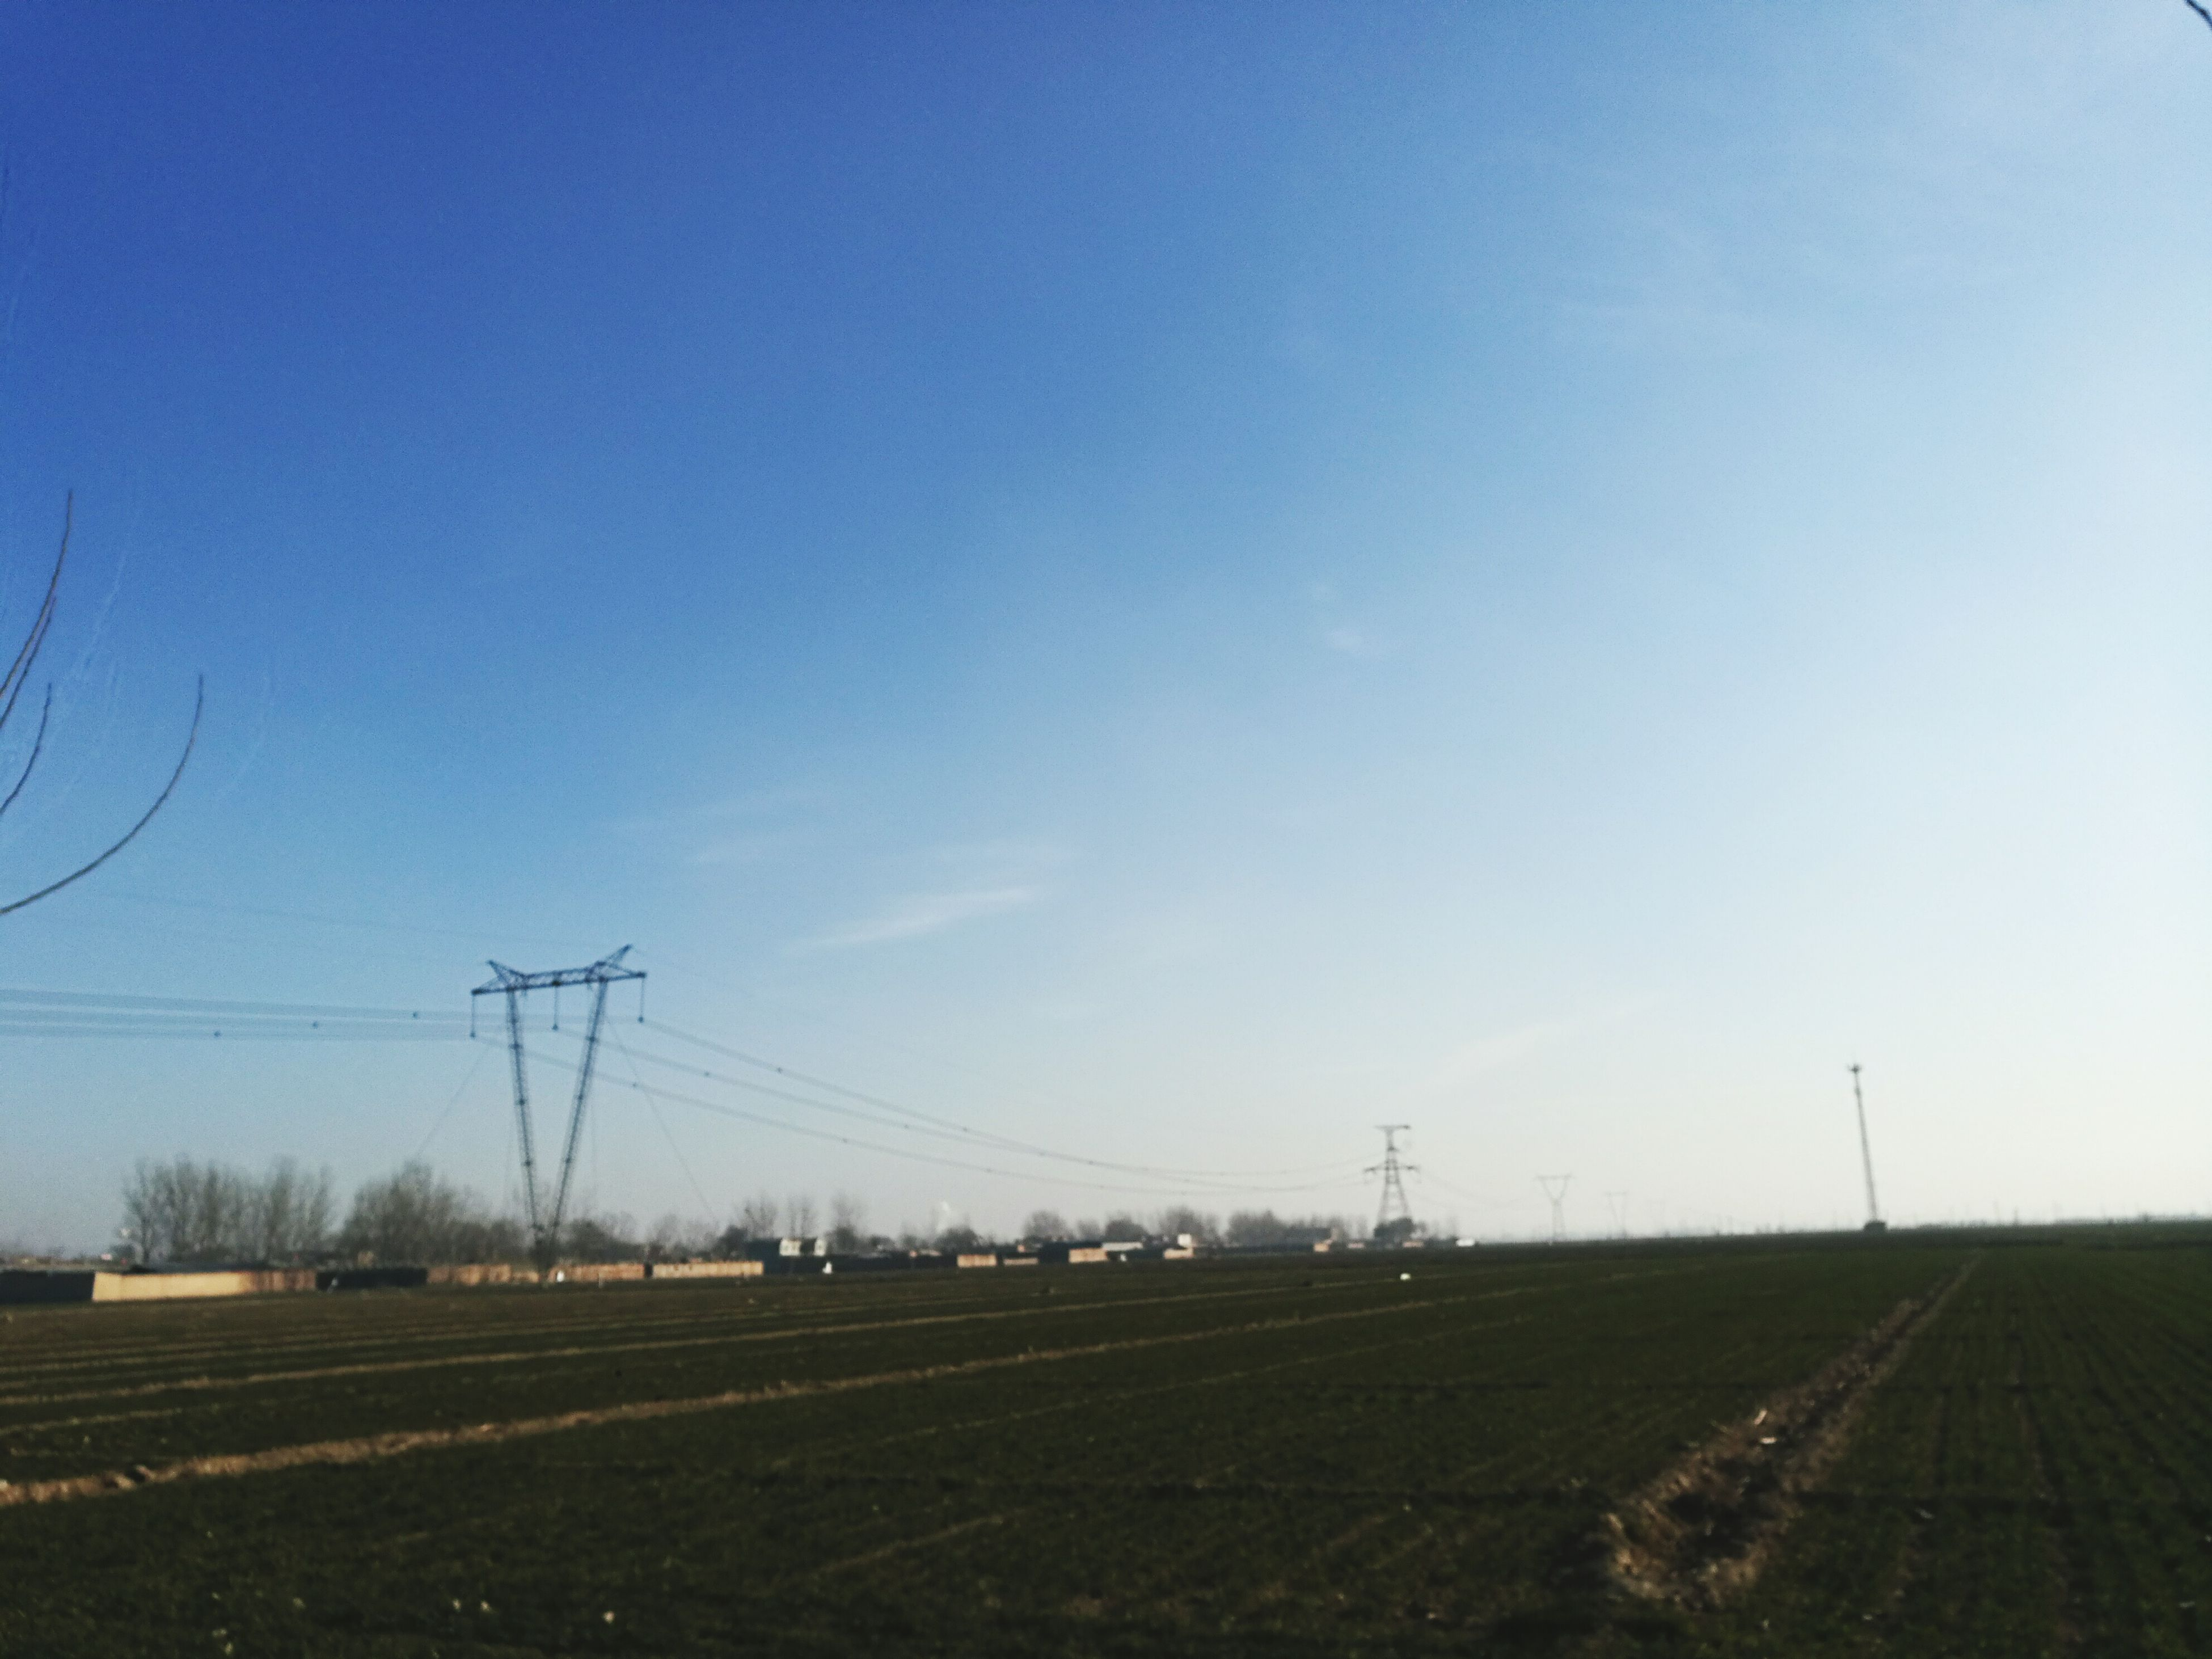 Electricity  Fuel And Power Generation Power Supply Clear Sky Electricity Pylon Blue Power Line  Sky Landscape Cable Outdoors No People Tranquility Day Technology Renewable Energy Alternative Energy Grass Nature